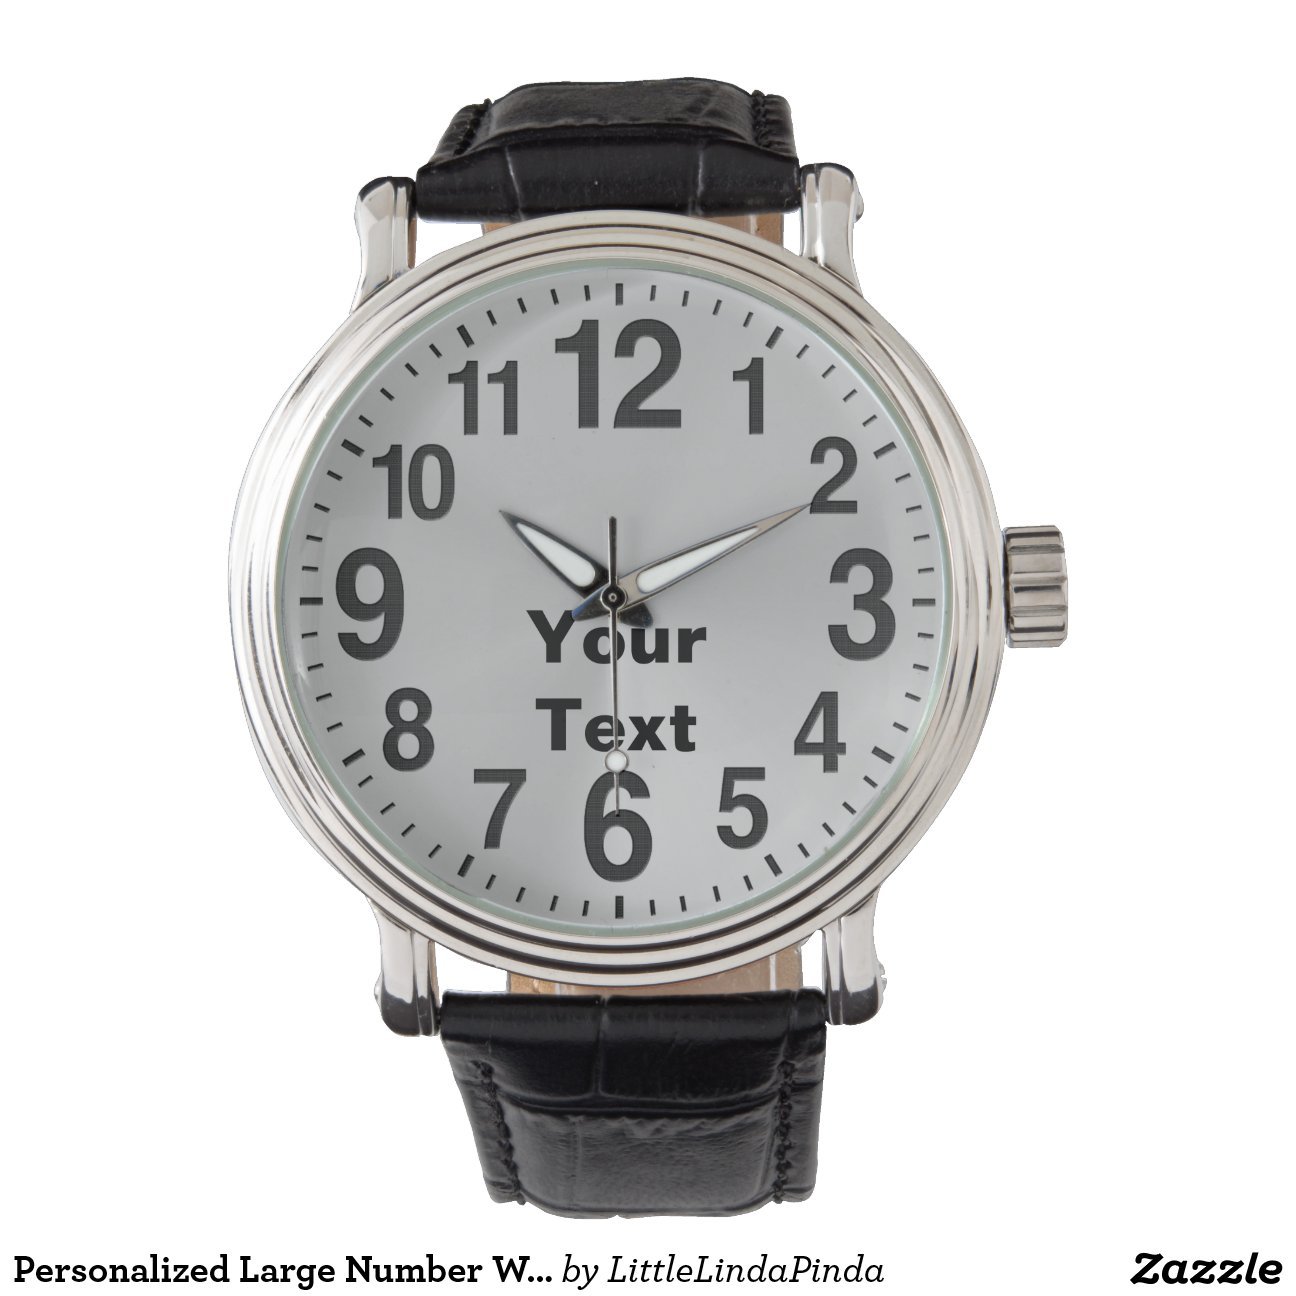 personalised large number watches for zazzle